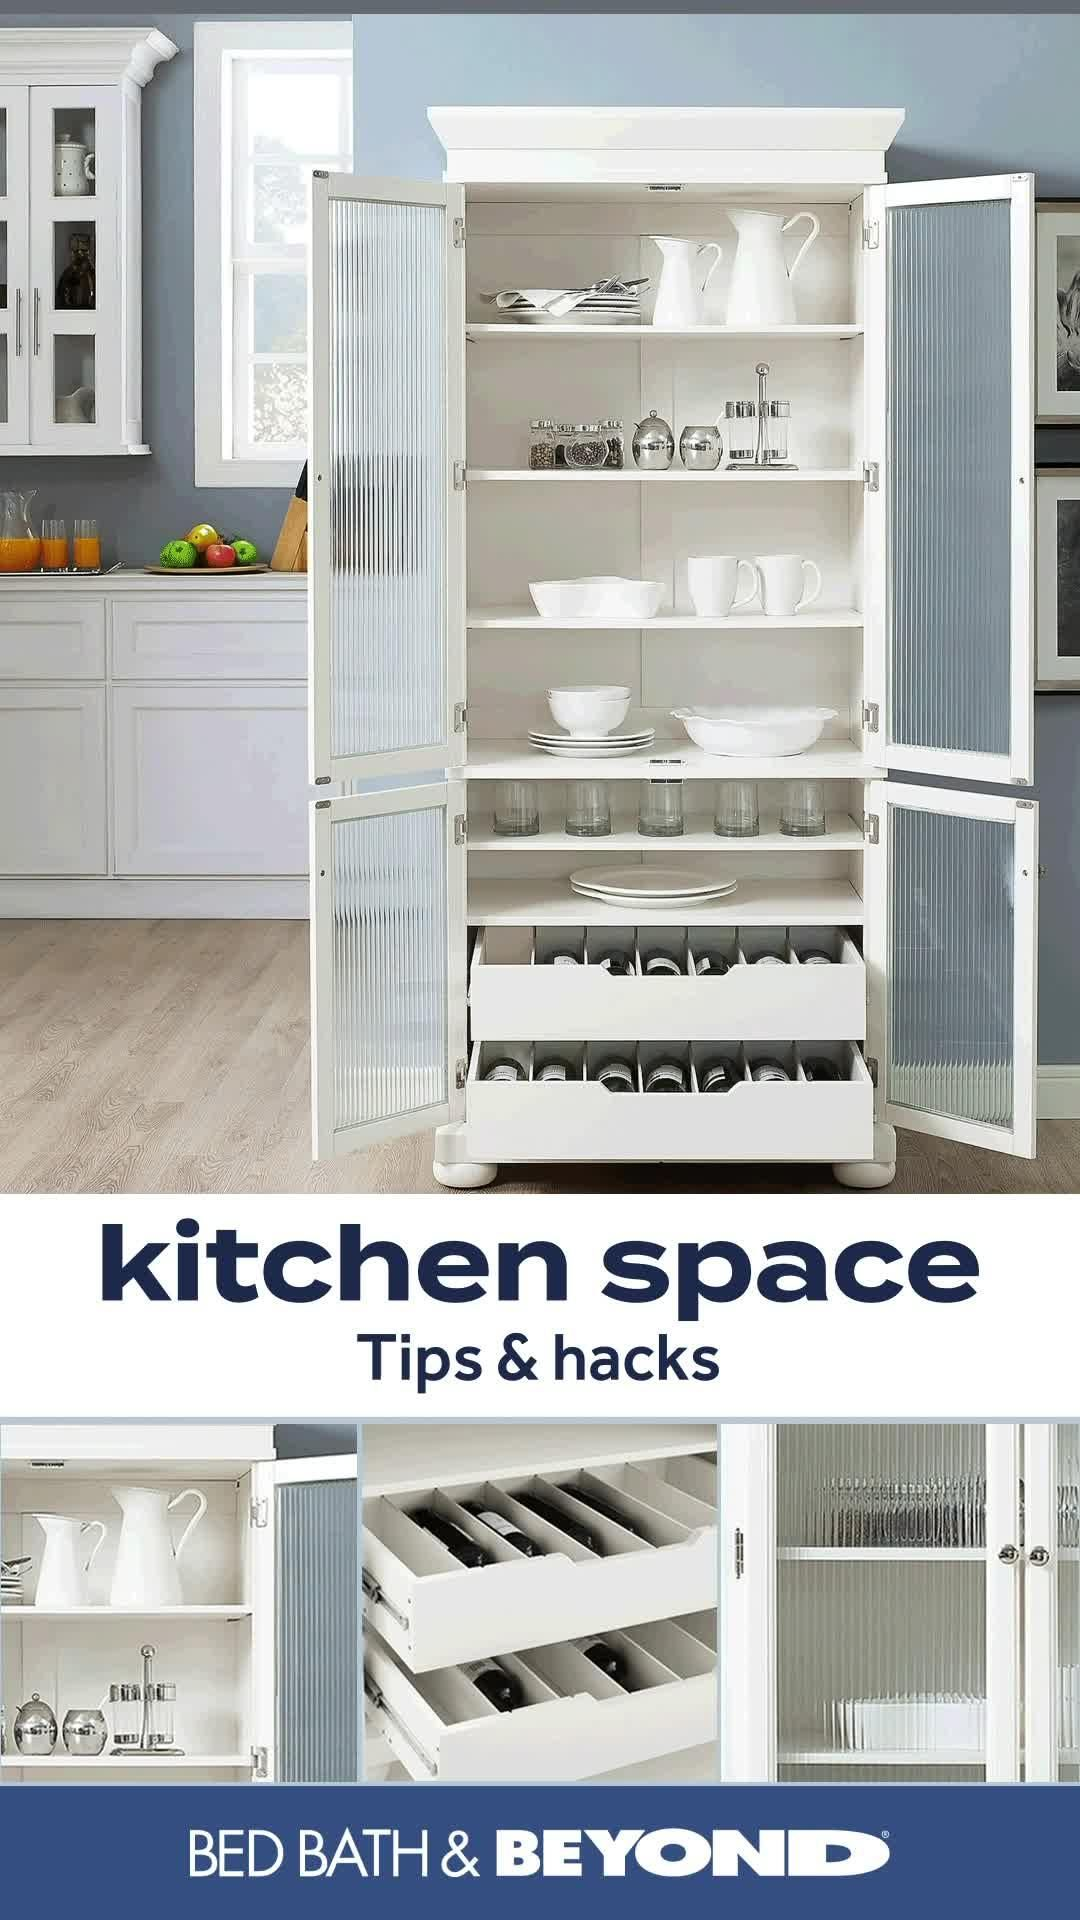 Kitchen Storage | Pot Rack | Paper Towel Holder | Bed Bath & Beyond